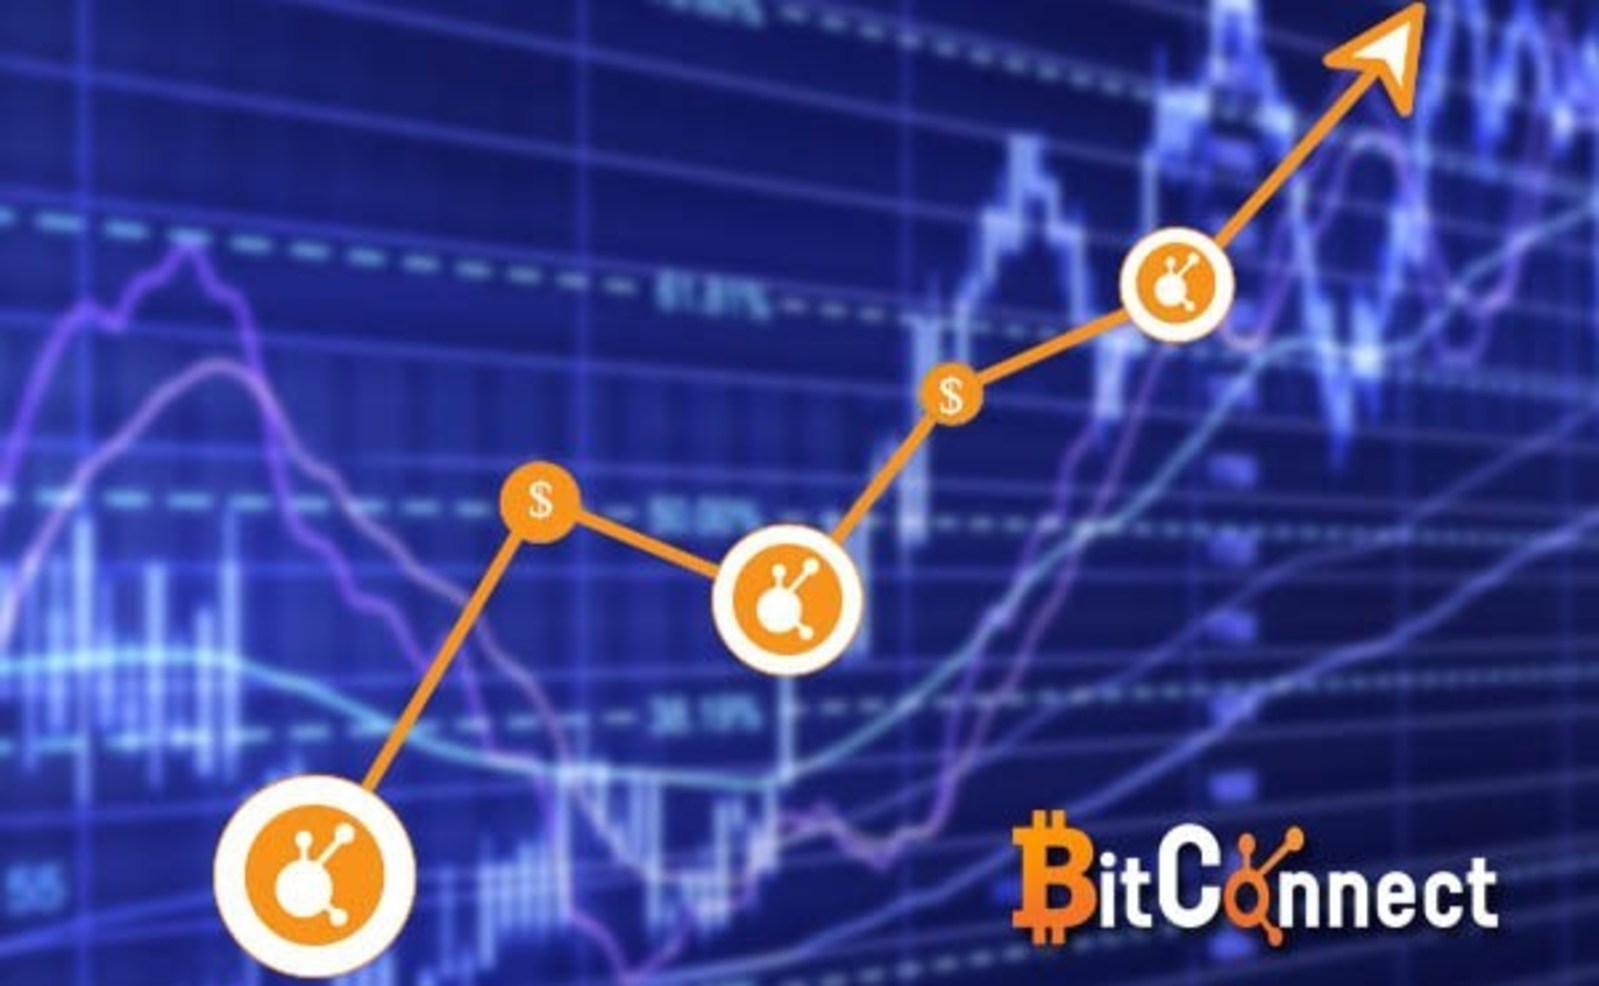 BitConnect Coin